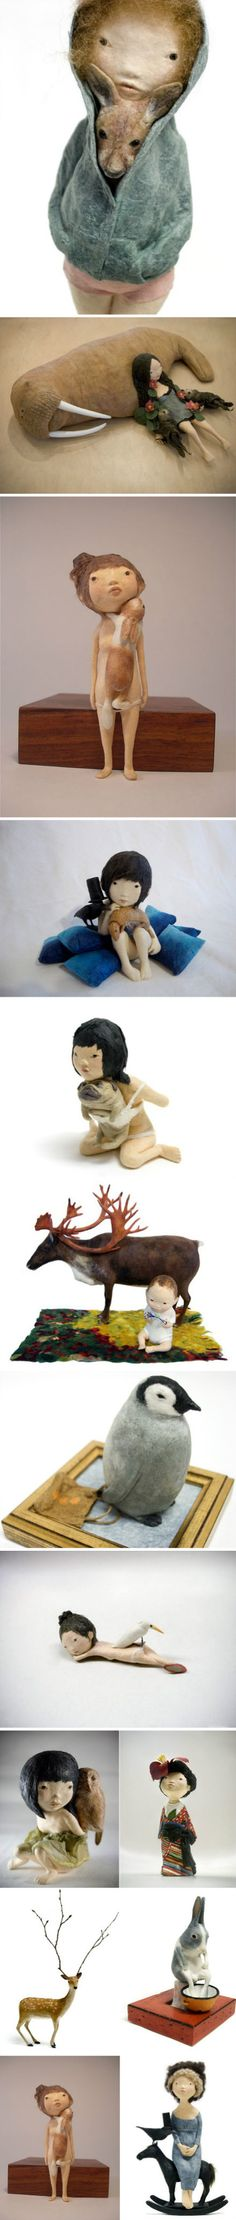 What more in life do you need when you can be naked with your bunny?(Kyoko Okubo